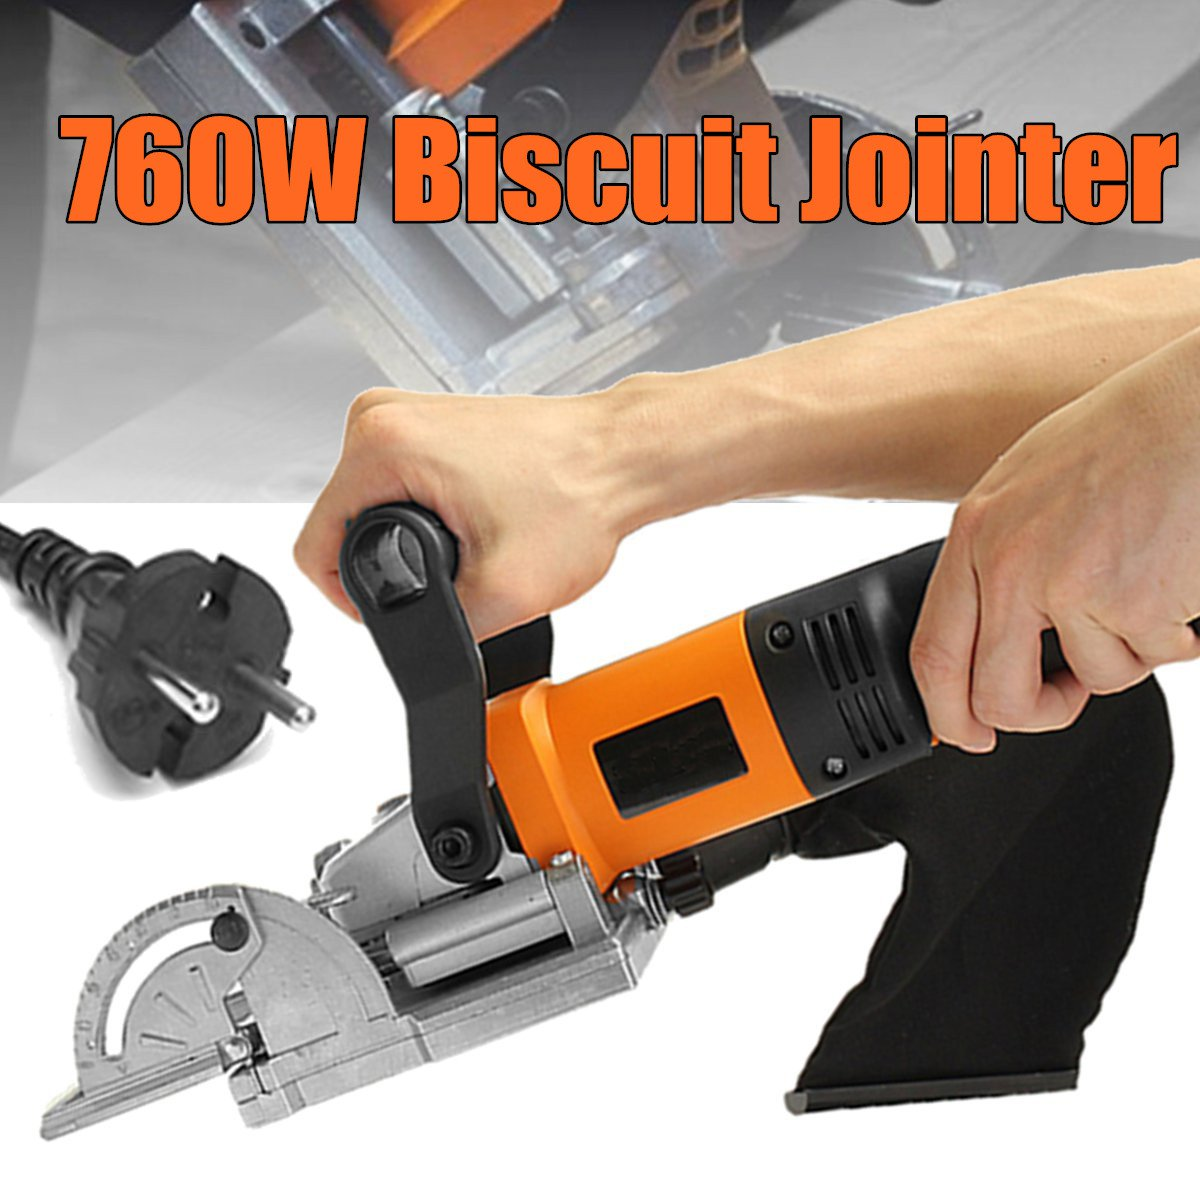 760W Biscuit Jointer Wood Working Tenoning Machine Biscuit Machine Puzzle Machine Groover тени для век delilah colour intense eyeshadow biscuit цвет biscuit variant hex name a57b6b